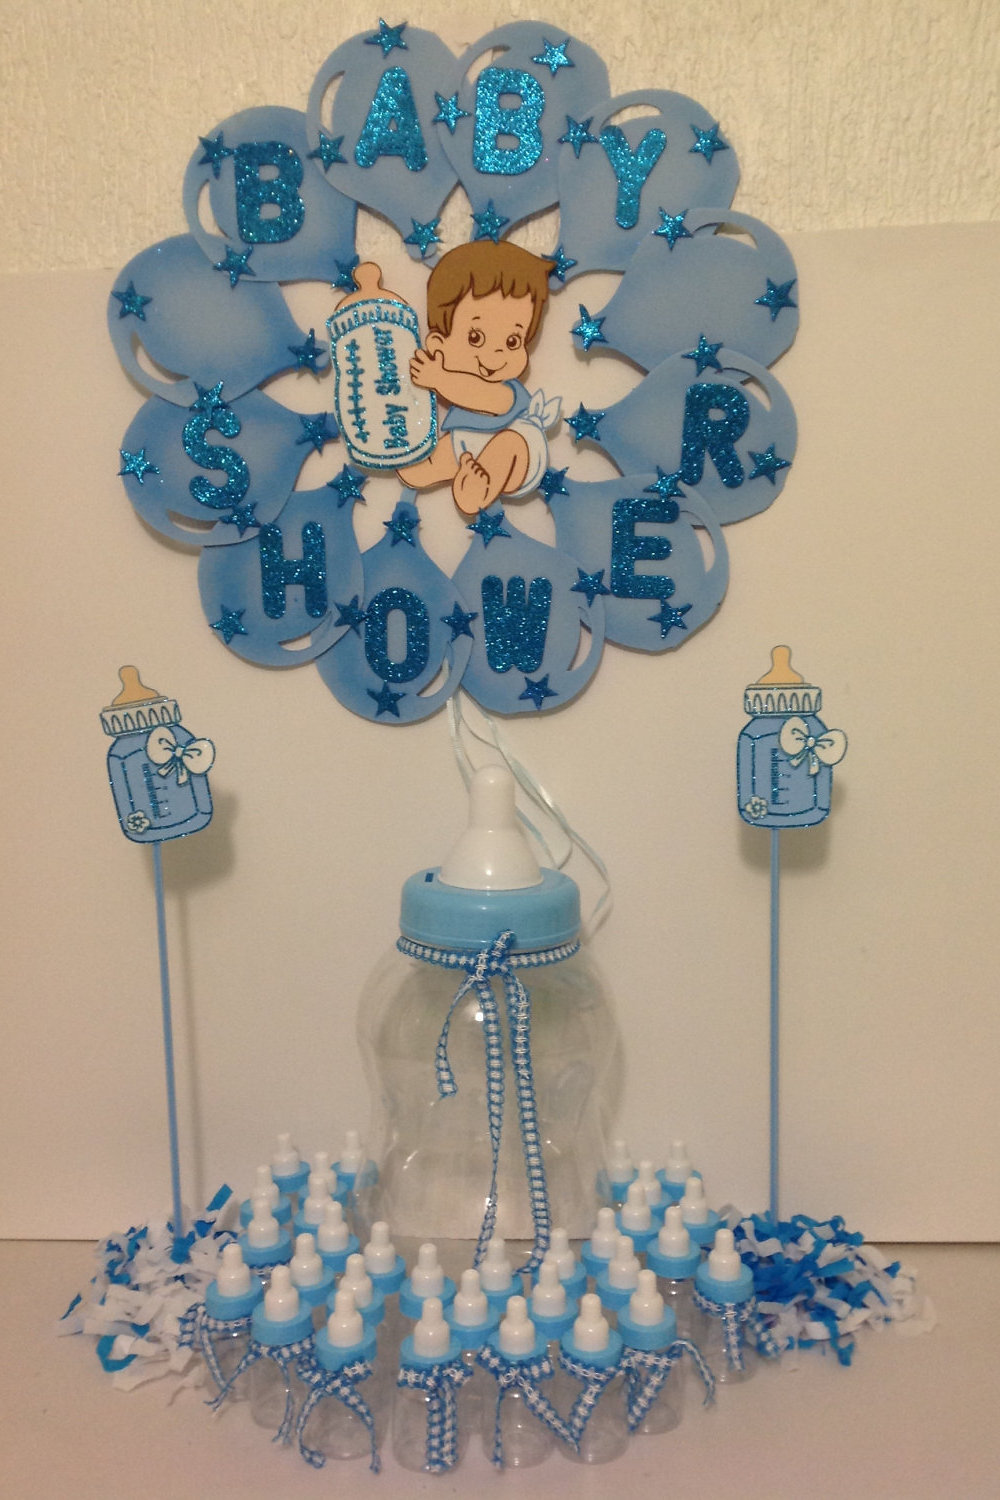 Lovely Large Jumbo Big Baby Milk Bottle Baby Shower Party Favor Souvenir Gift    Includes 20 Baby Bottles For Favor   DECORATED